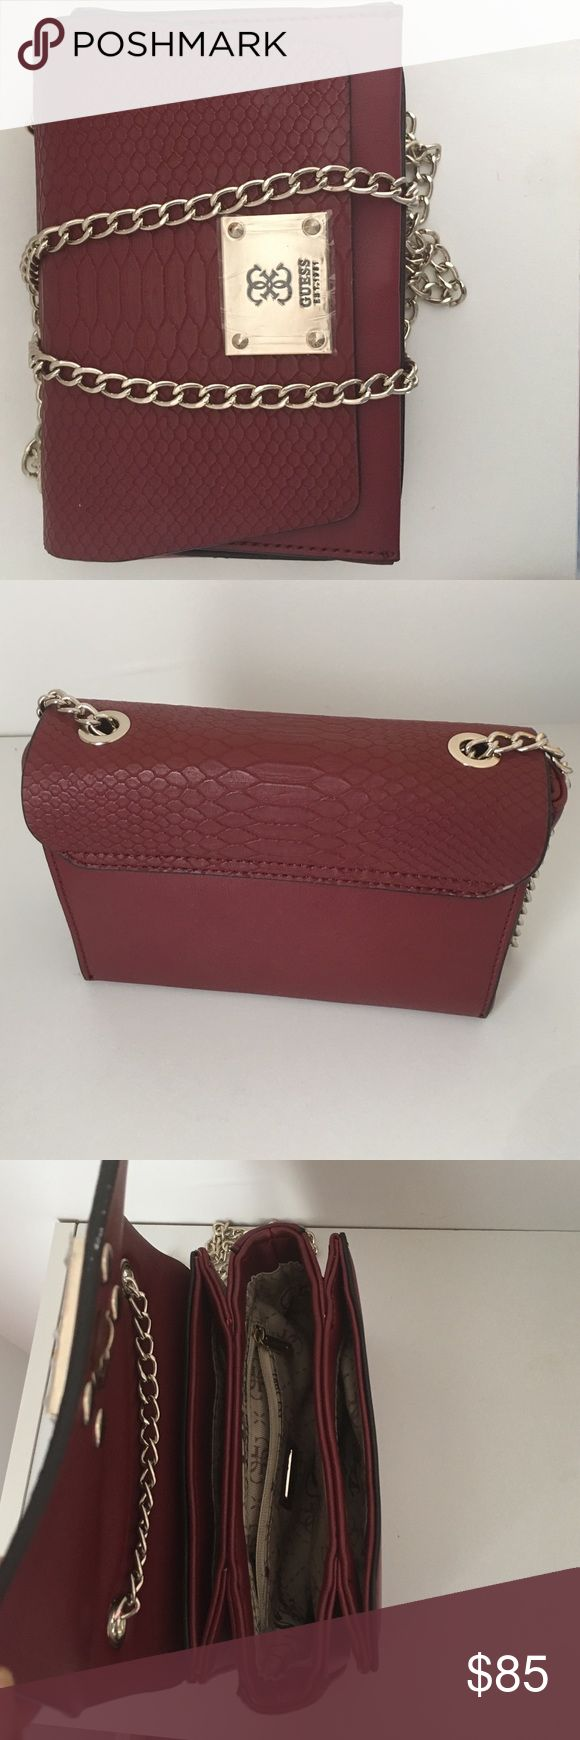 Angela cross body purse A timeless quilted burgundy  design  makes this cross-body the perfect addition to your handbag collection. Team it with both daytime and after-dark looks for chic, on-trend finish. Guess Bags Shoulder Bags